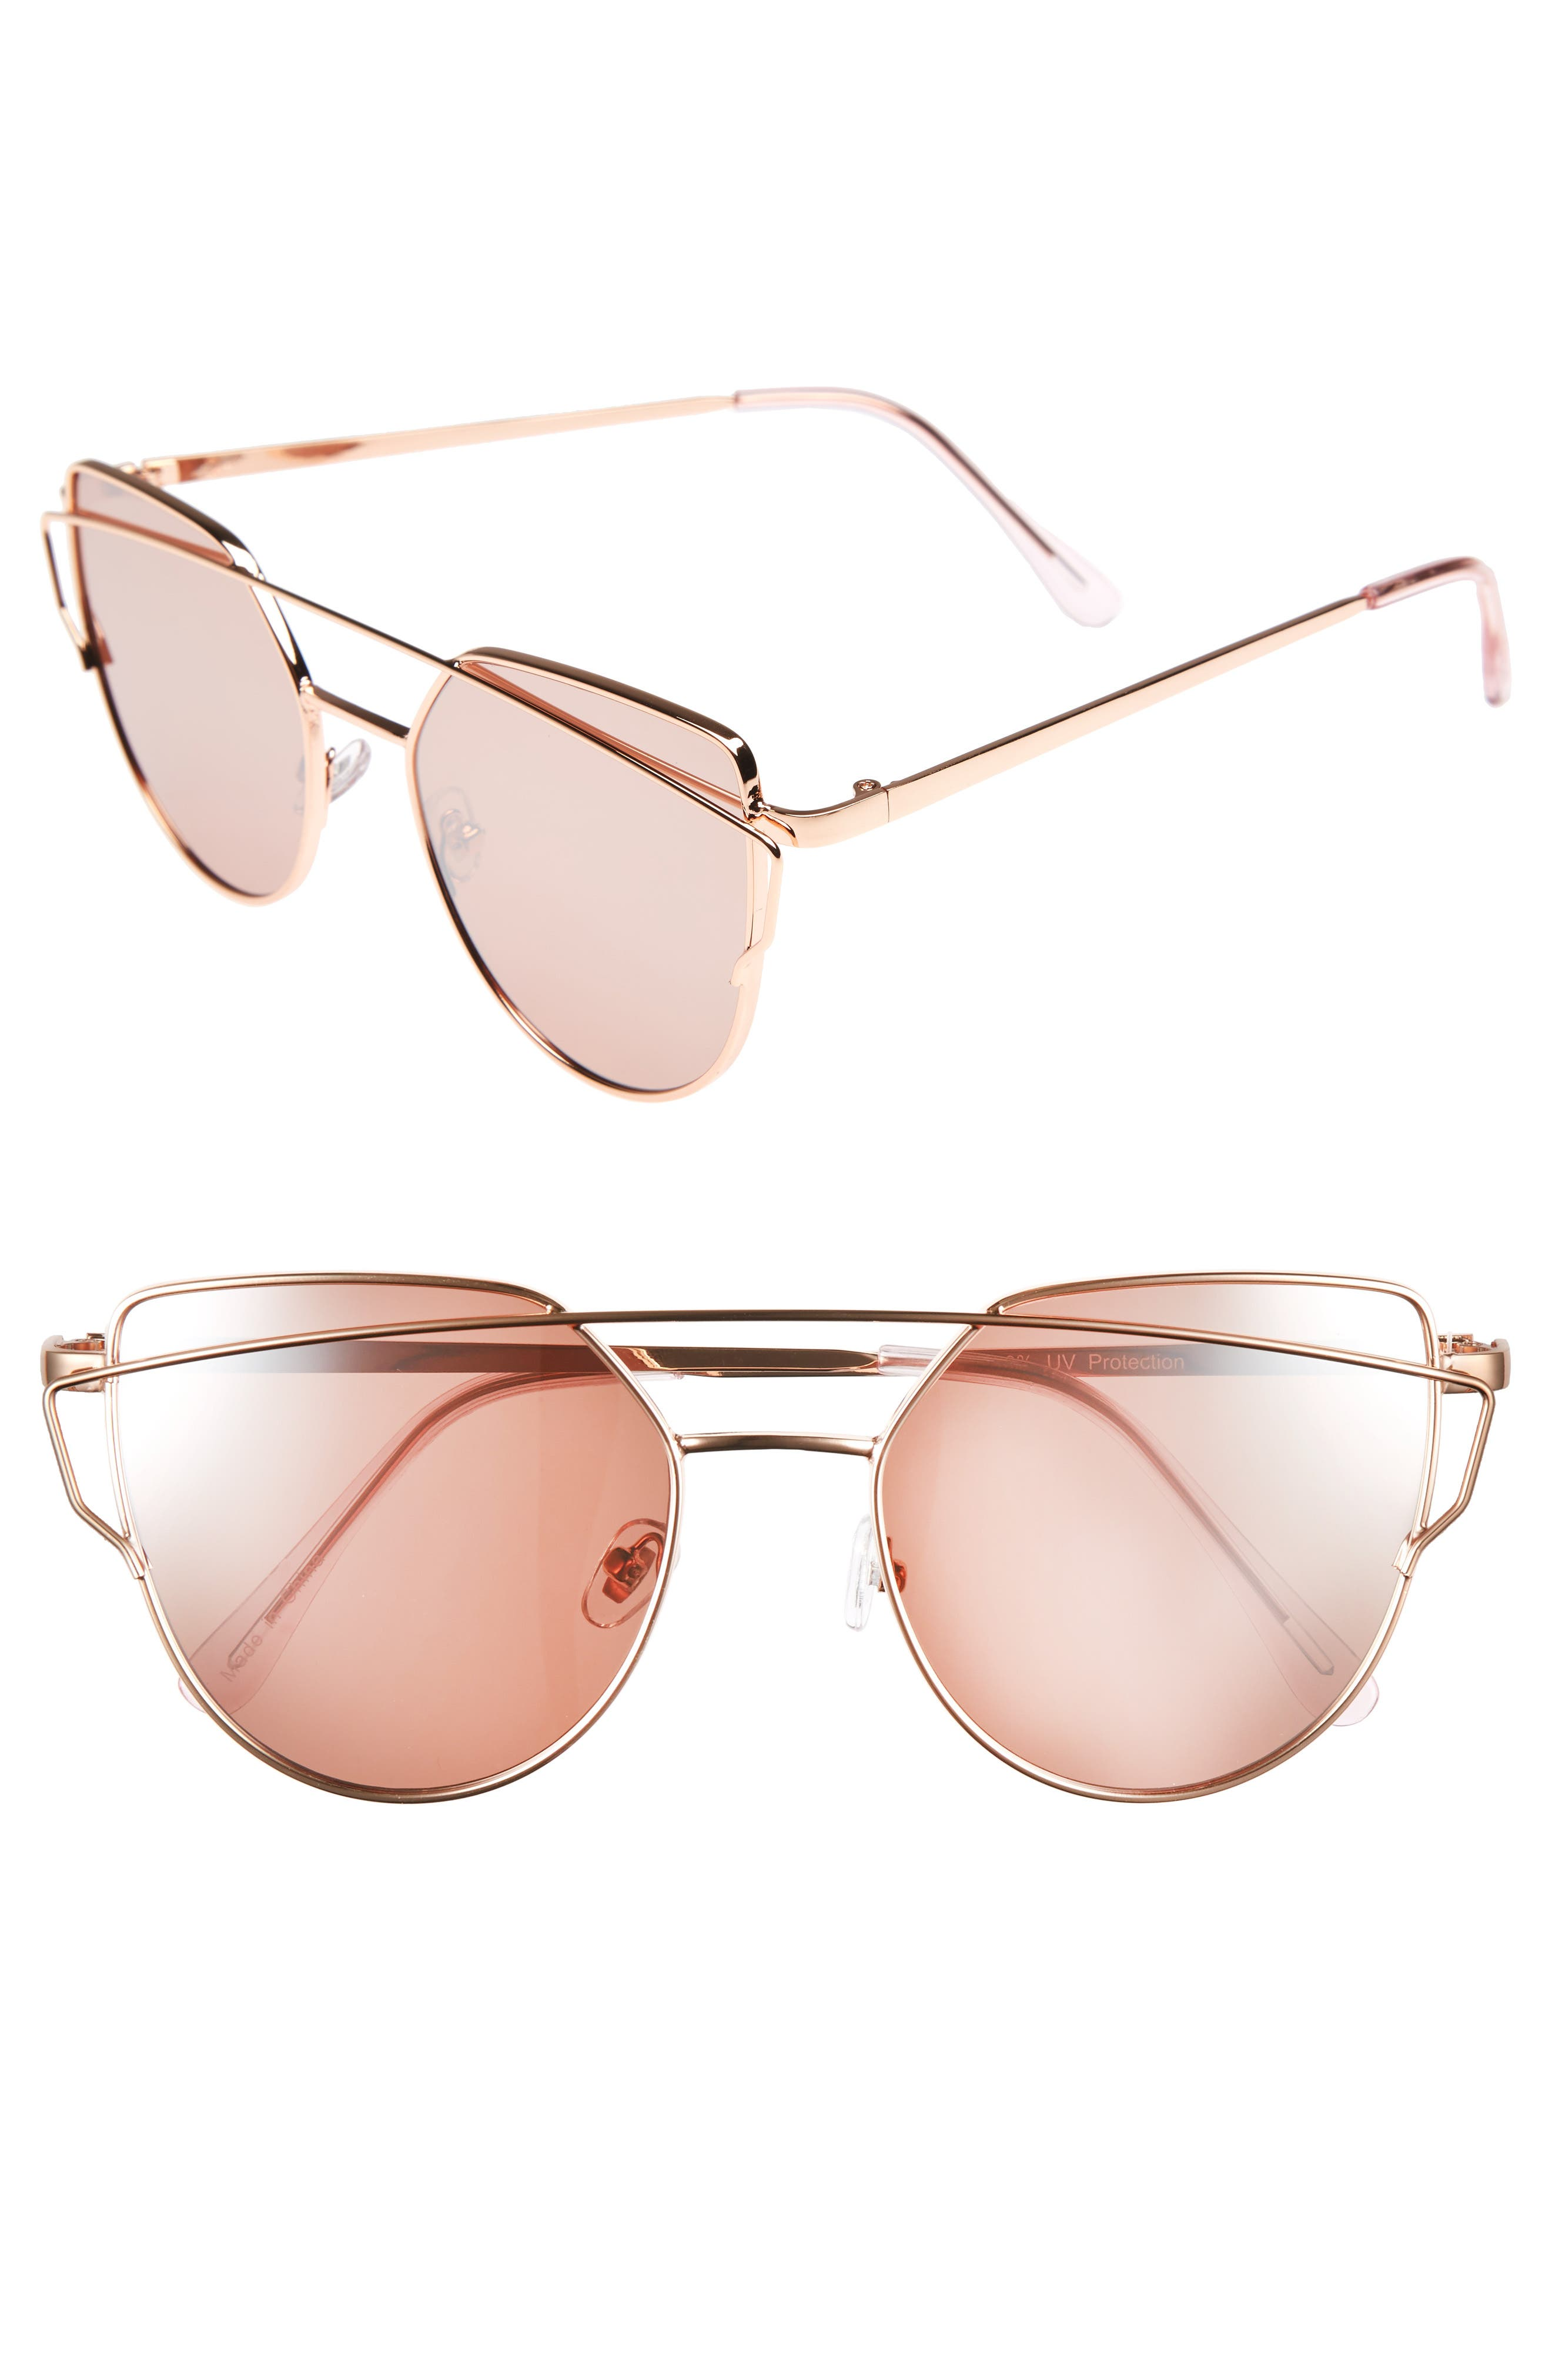 51mm Thin Brow Angular Aviator Sunglasses,                             Main thumbnail 5, color,